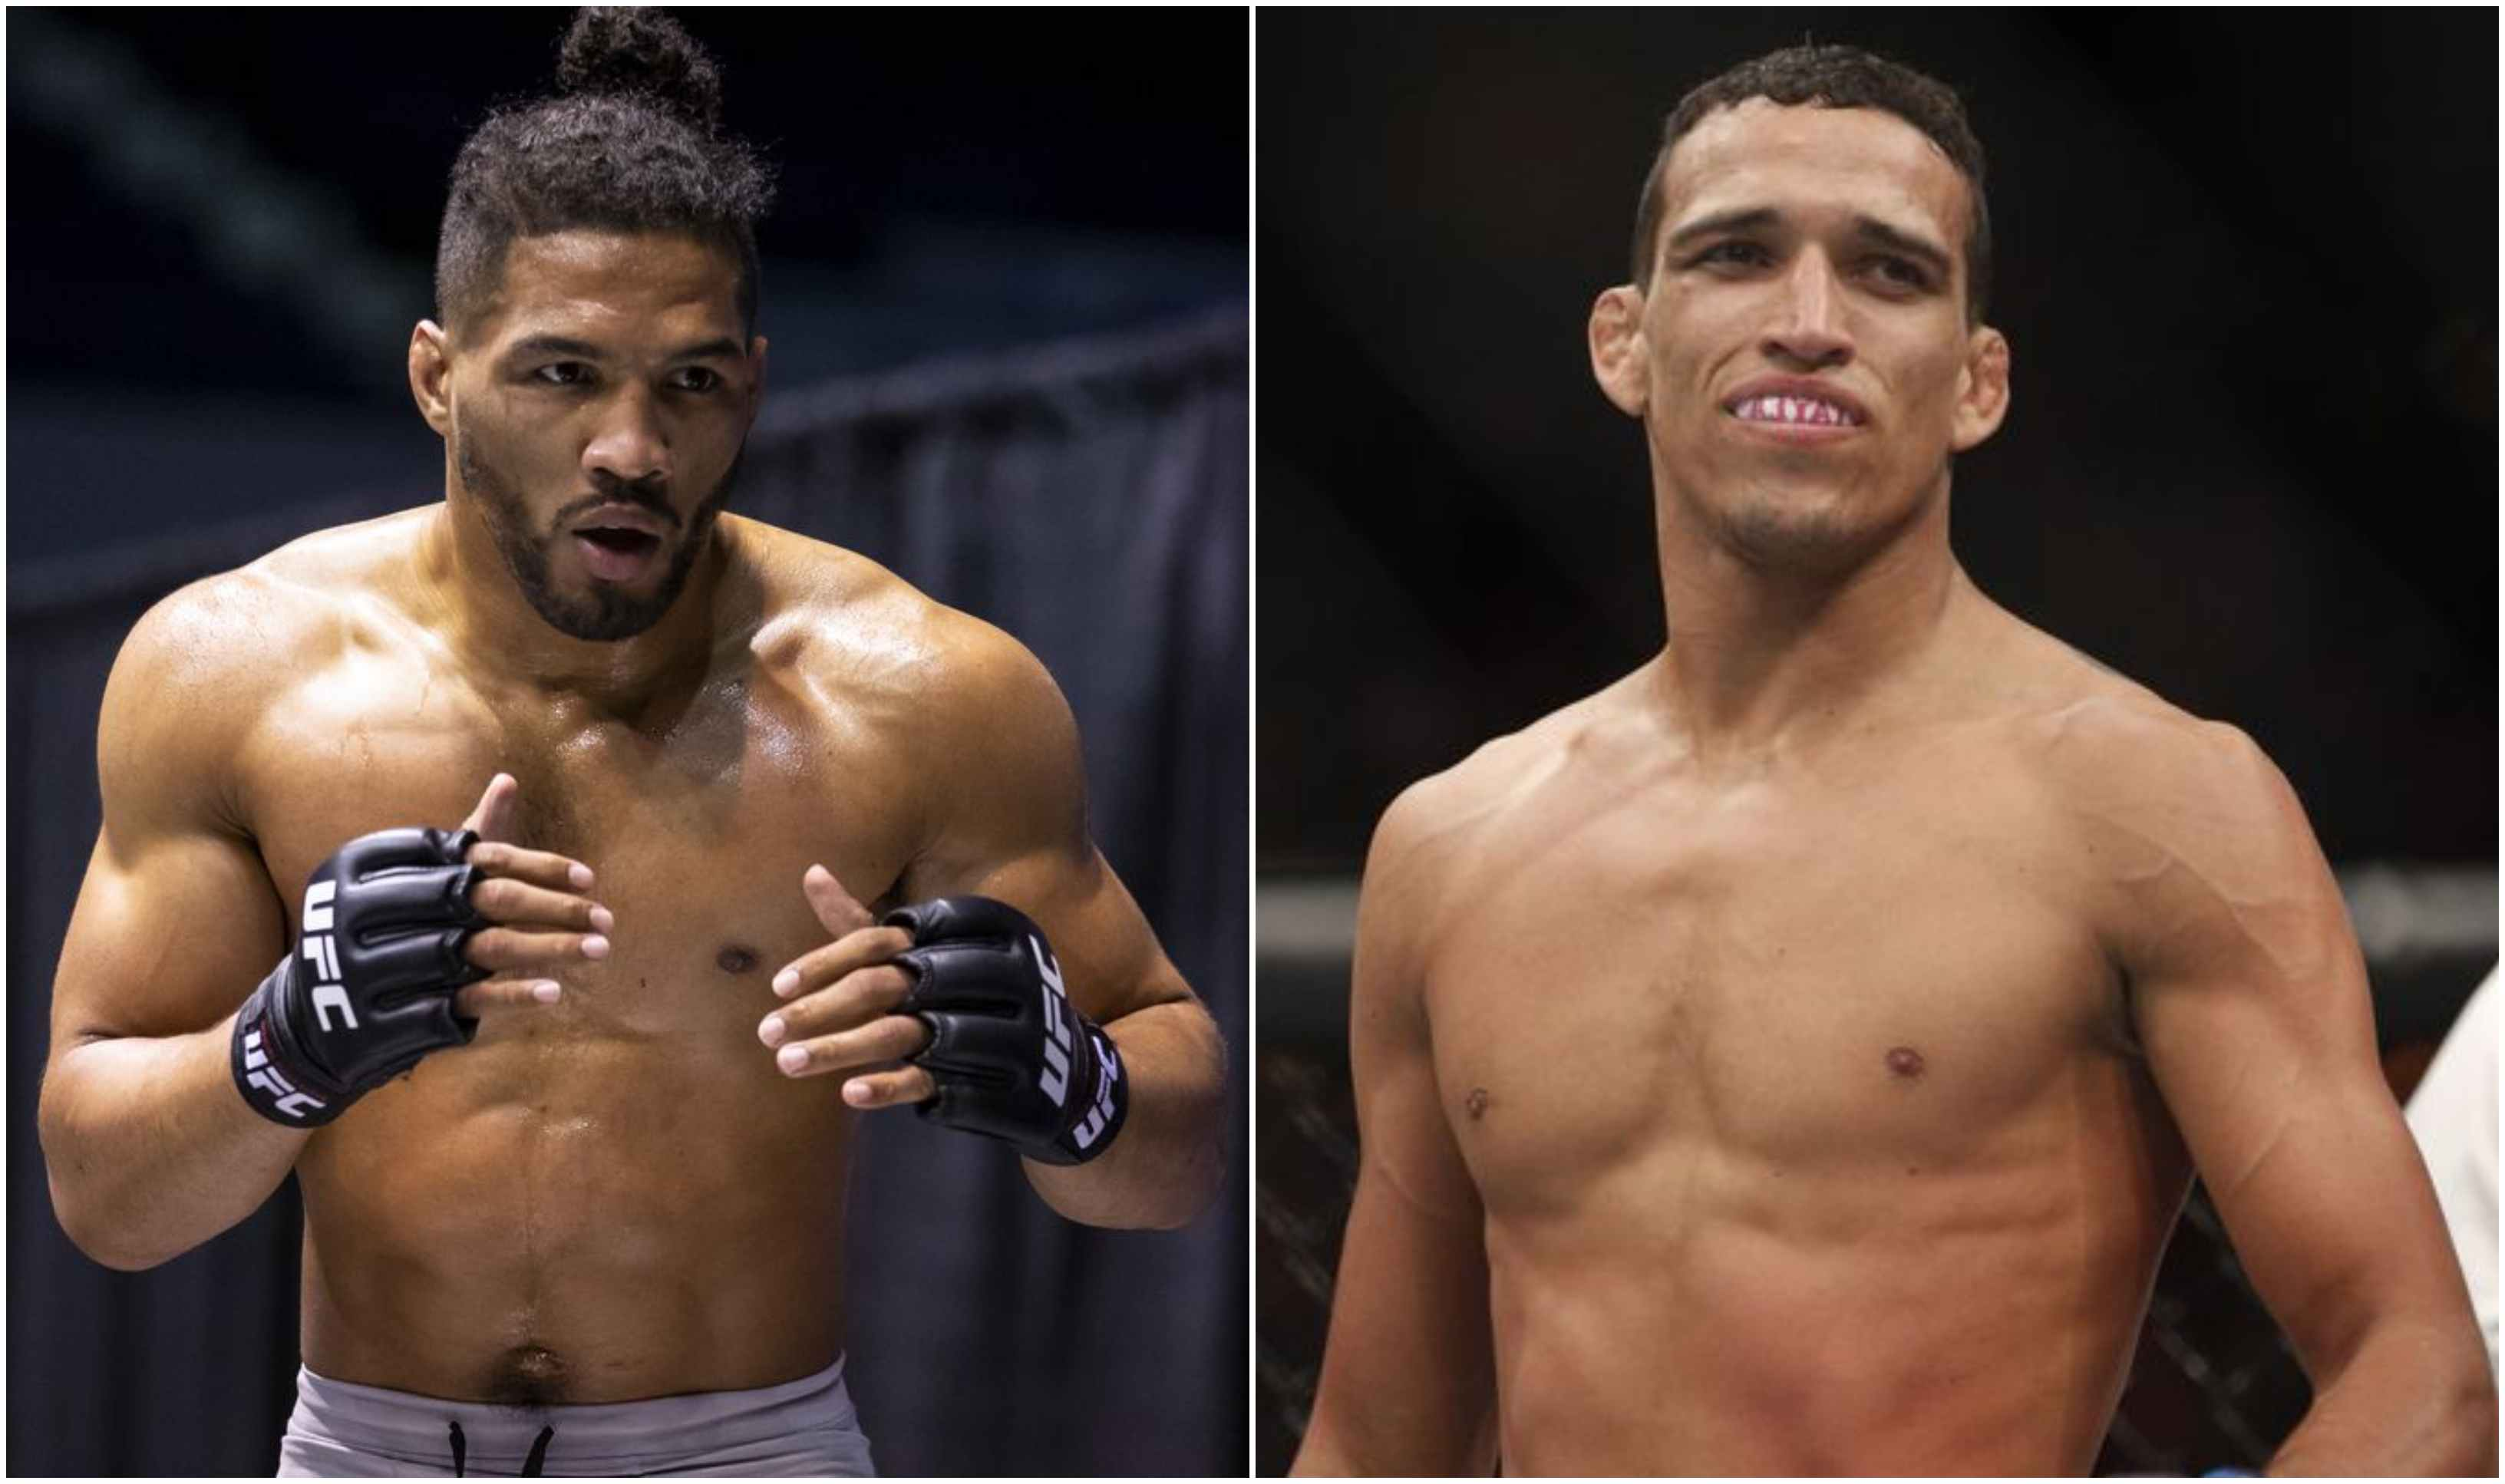 UFC News: Kevin Lee returns against Charles Oliveira at UFC Brasilia after spectacular Gillespie KO - Kevin